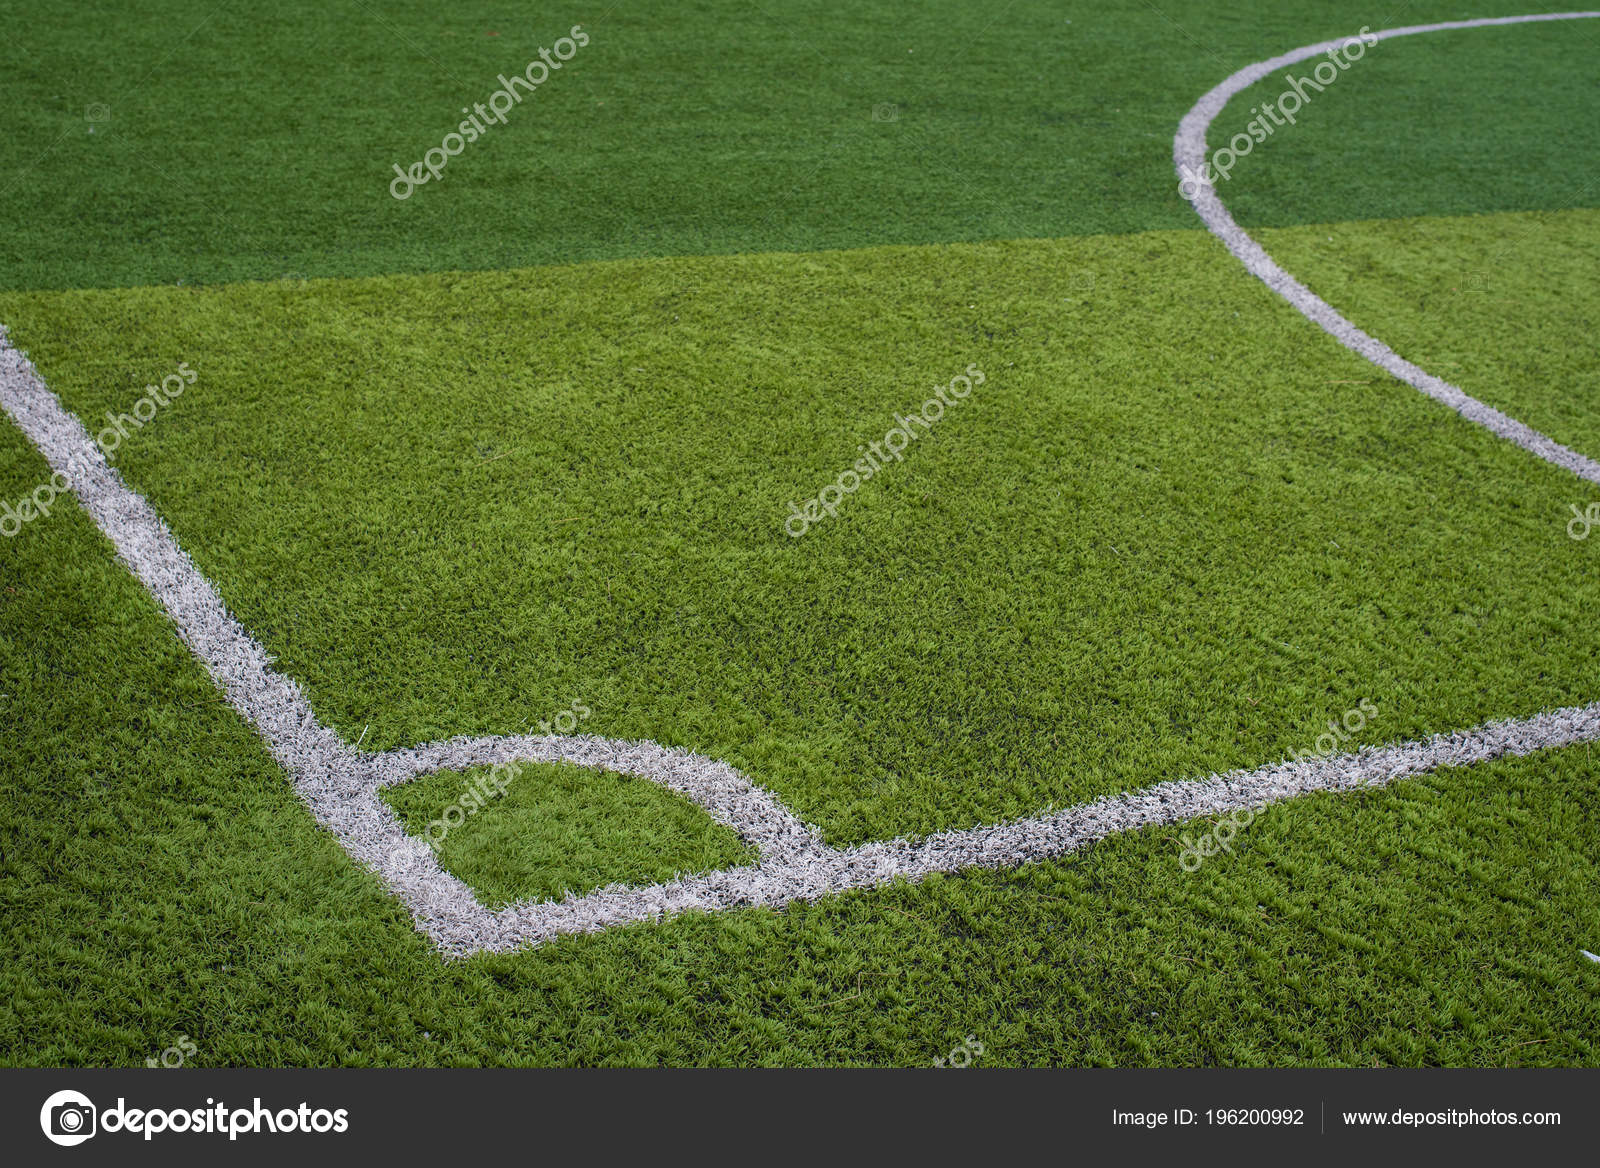 green grass football field short grass football field futsal green grass corner footbal stock photo